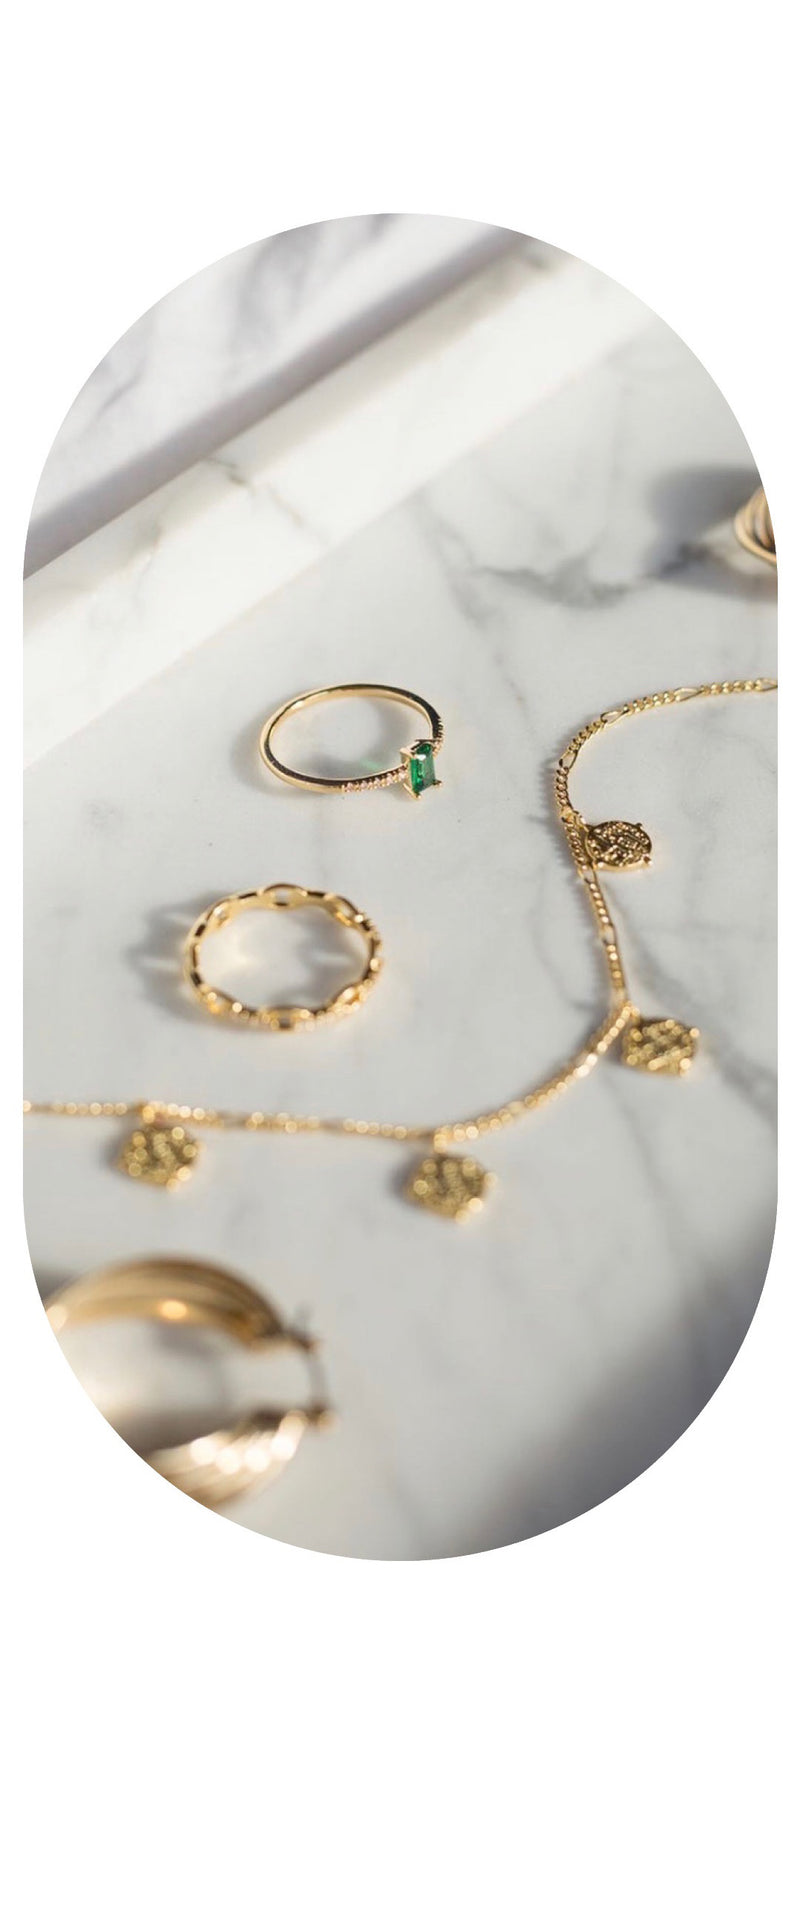 Accessories online at Dolly Met Frank - Jewellery, Earrings, Sunglasses